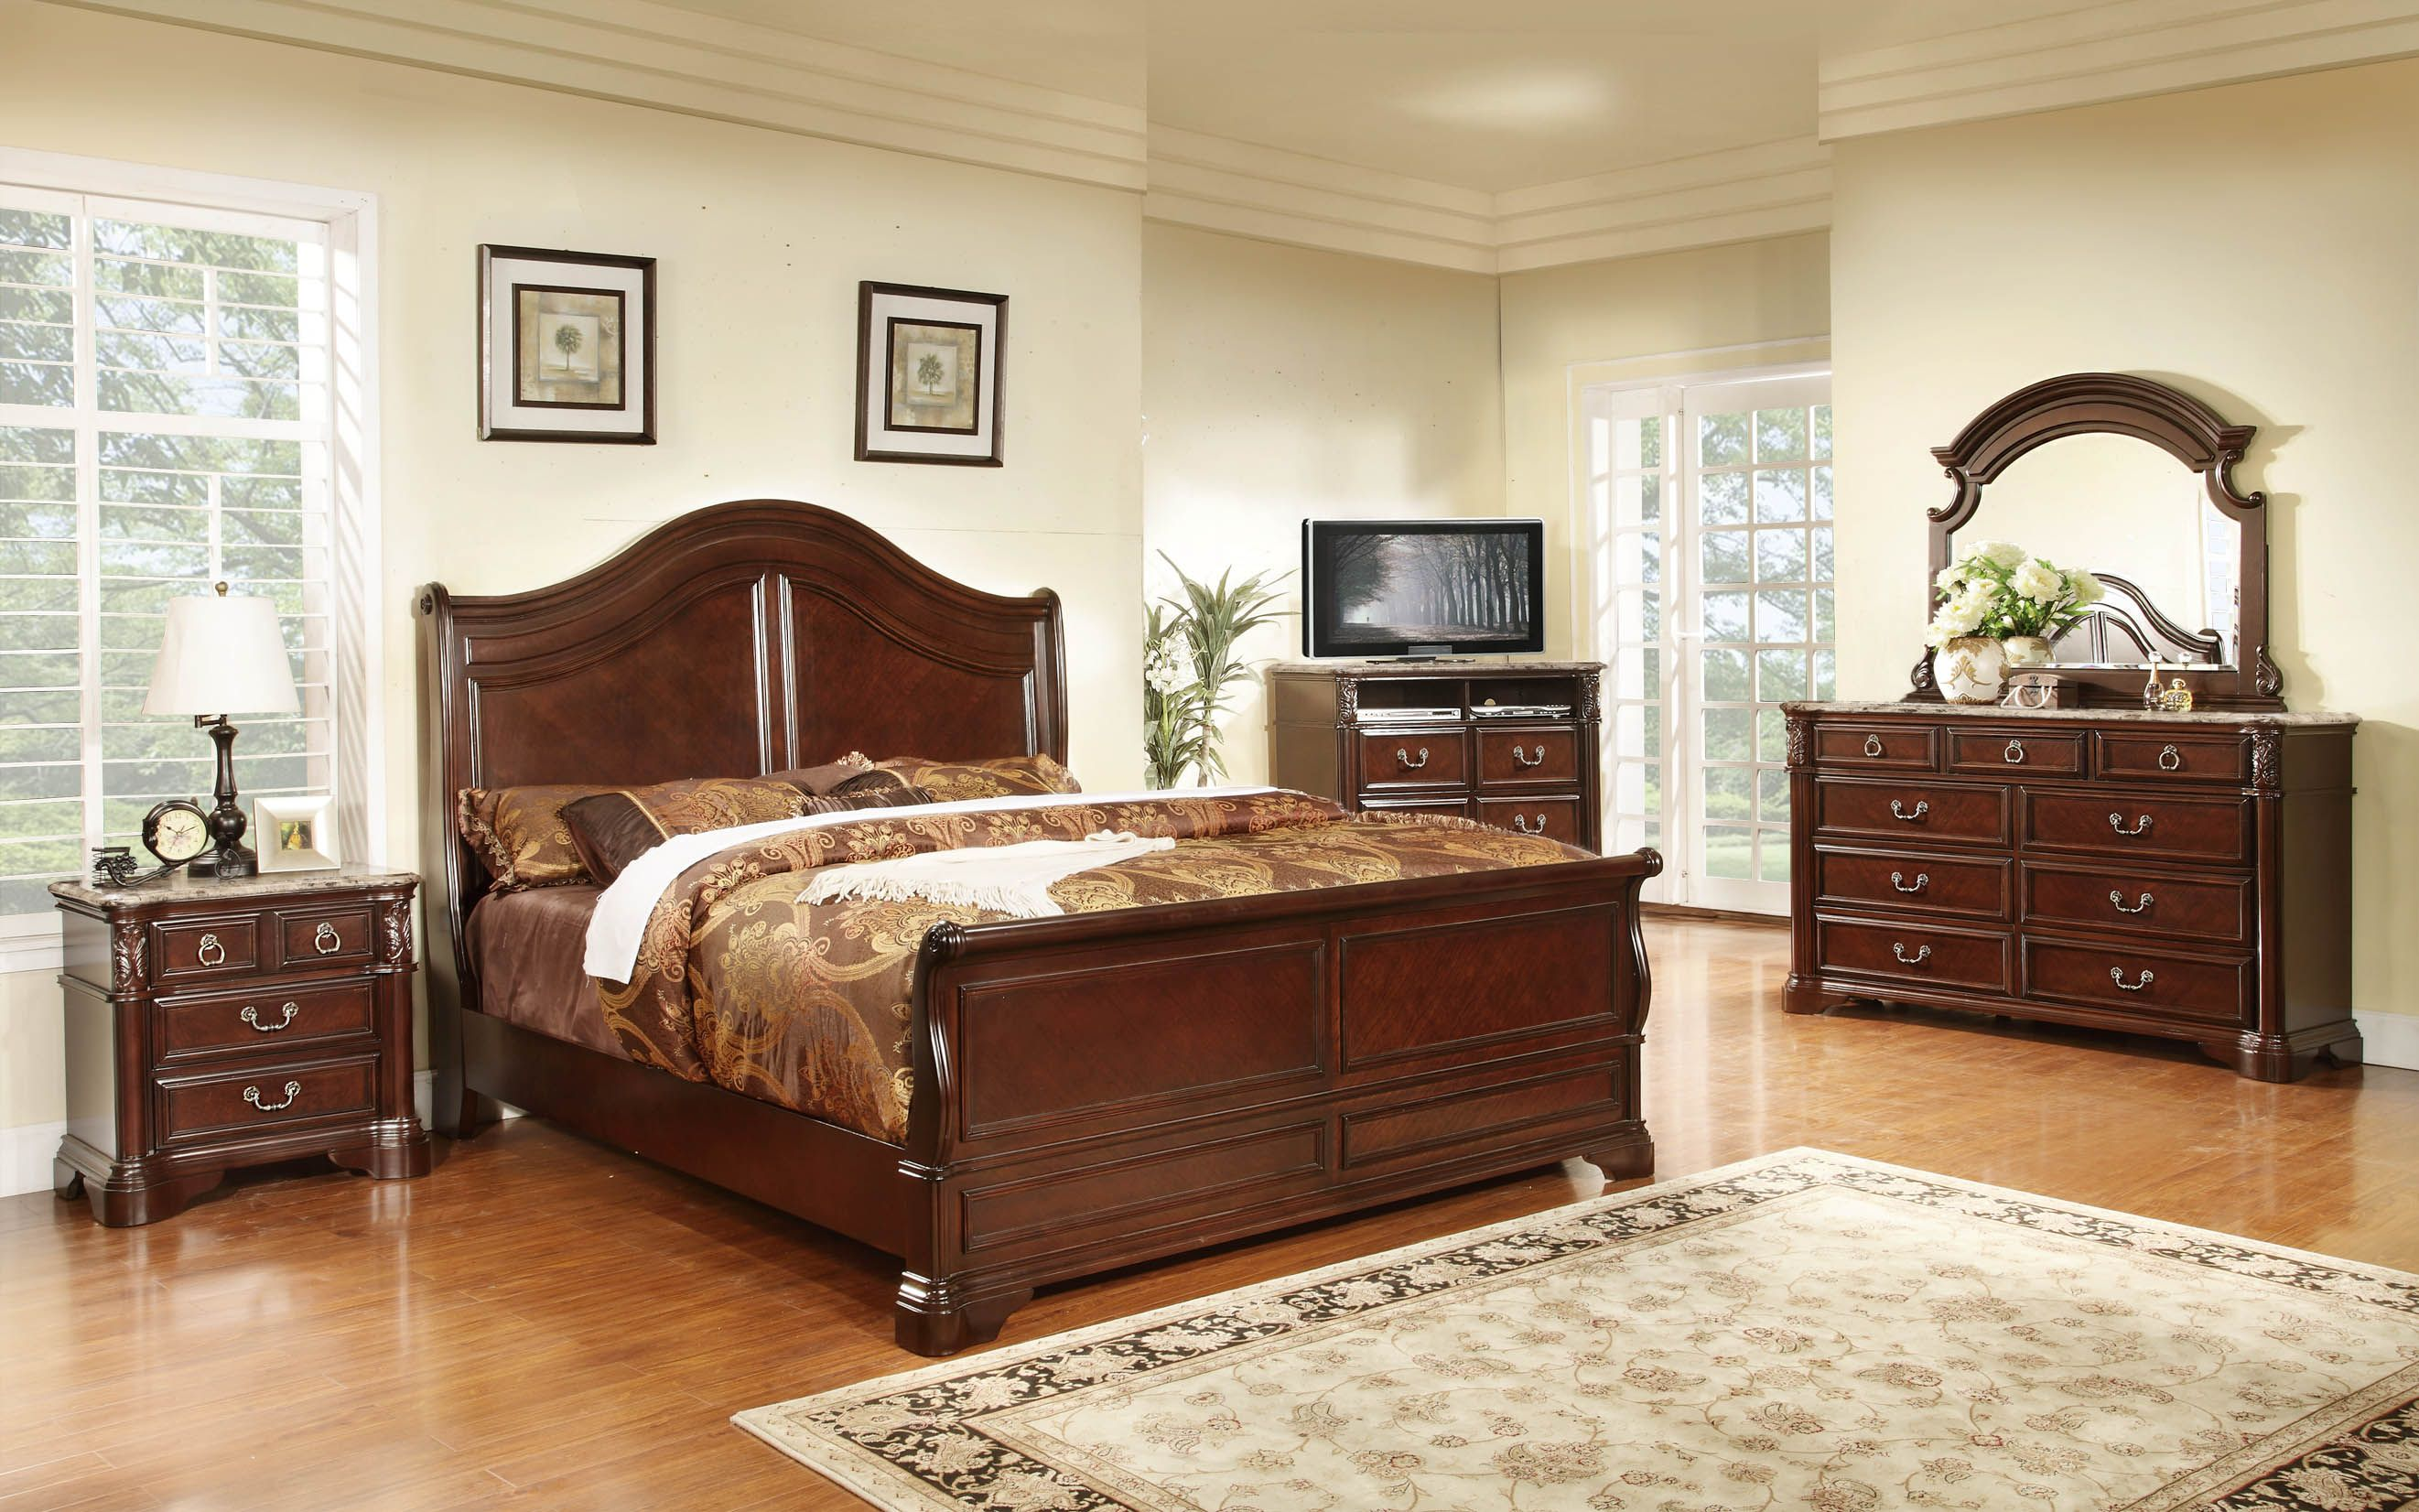 Bells Furniture San Antonio Set 6pc monte carlo king bedroom set bel furniture houston & san